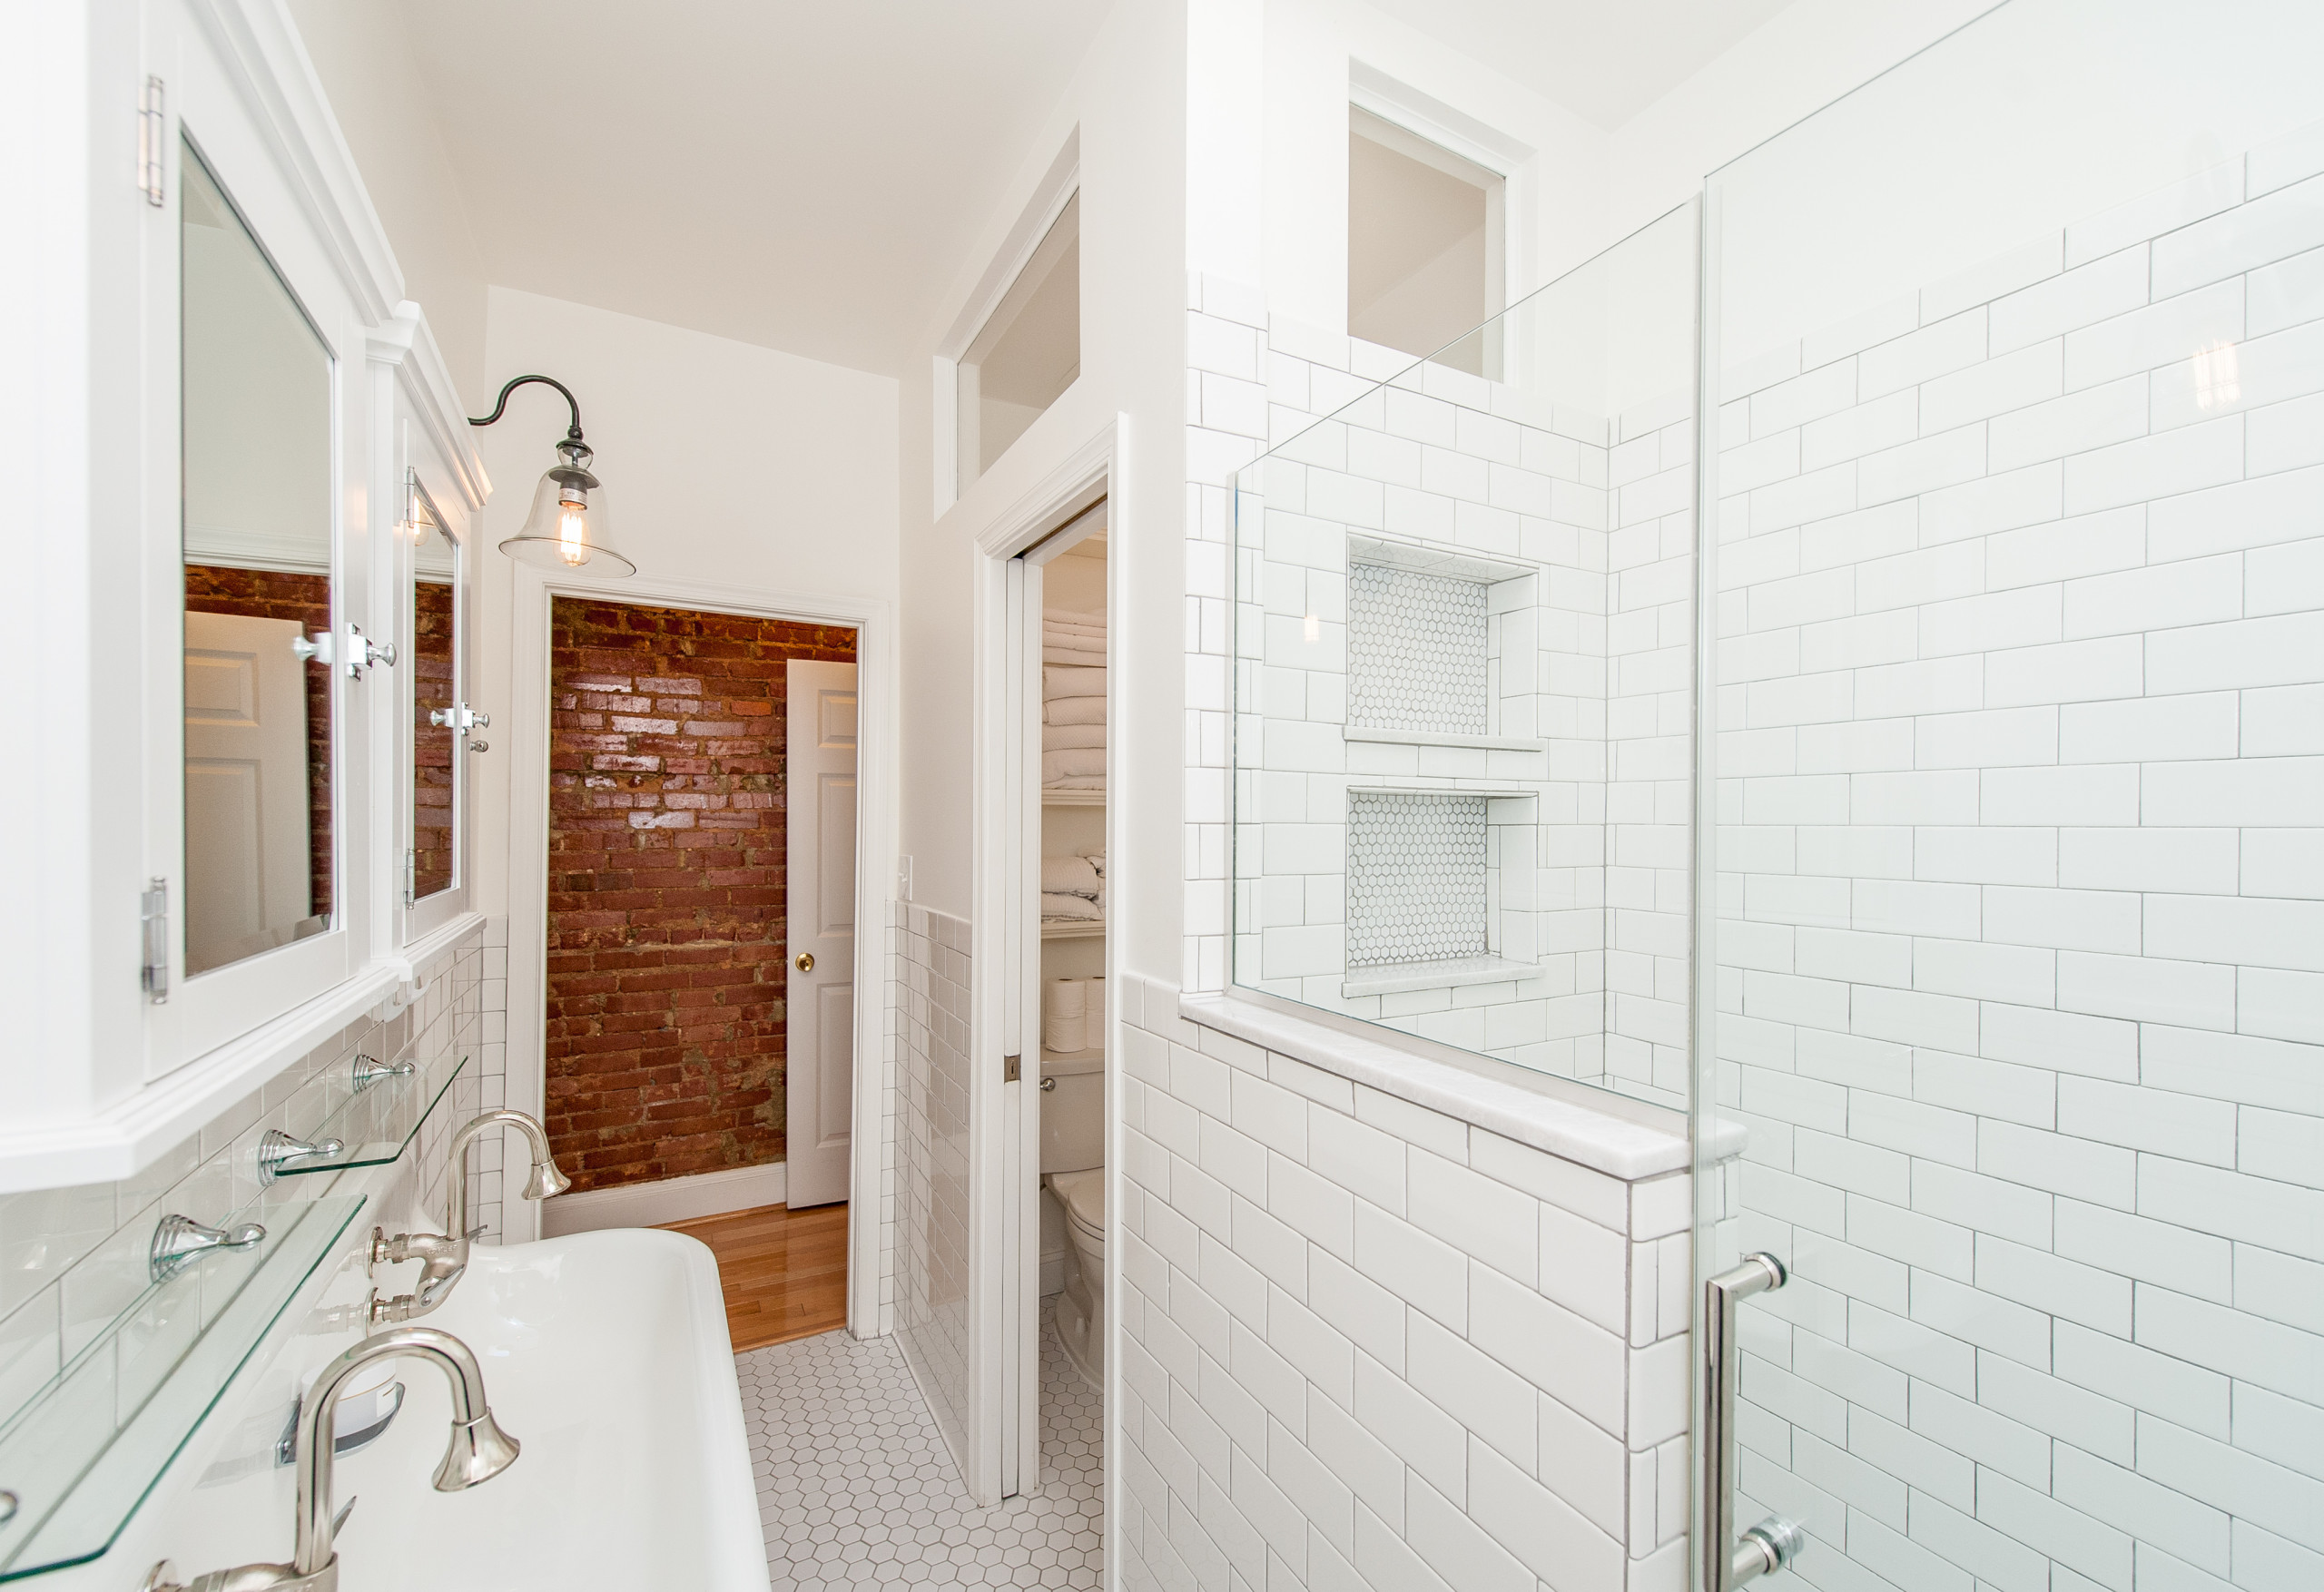 Some of my favorite Bathrooms